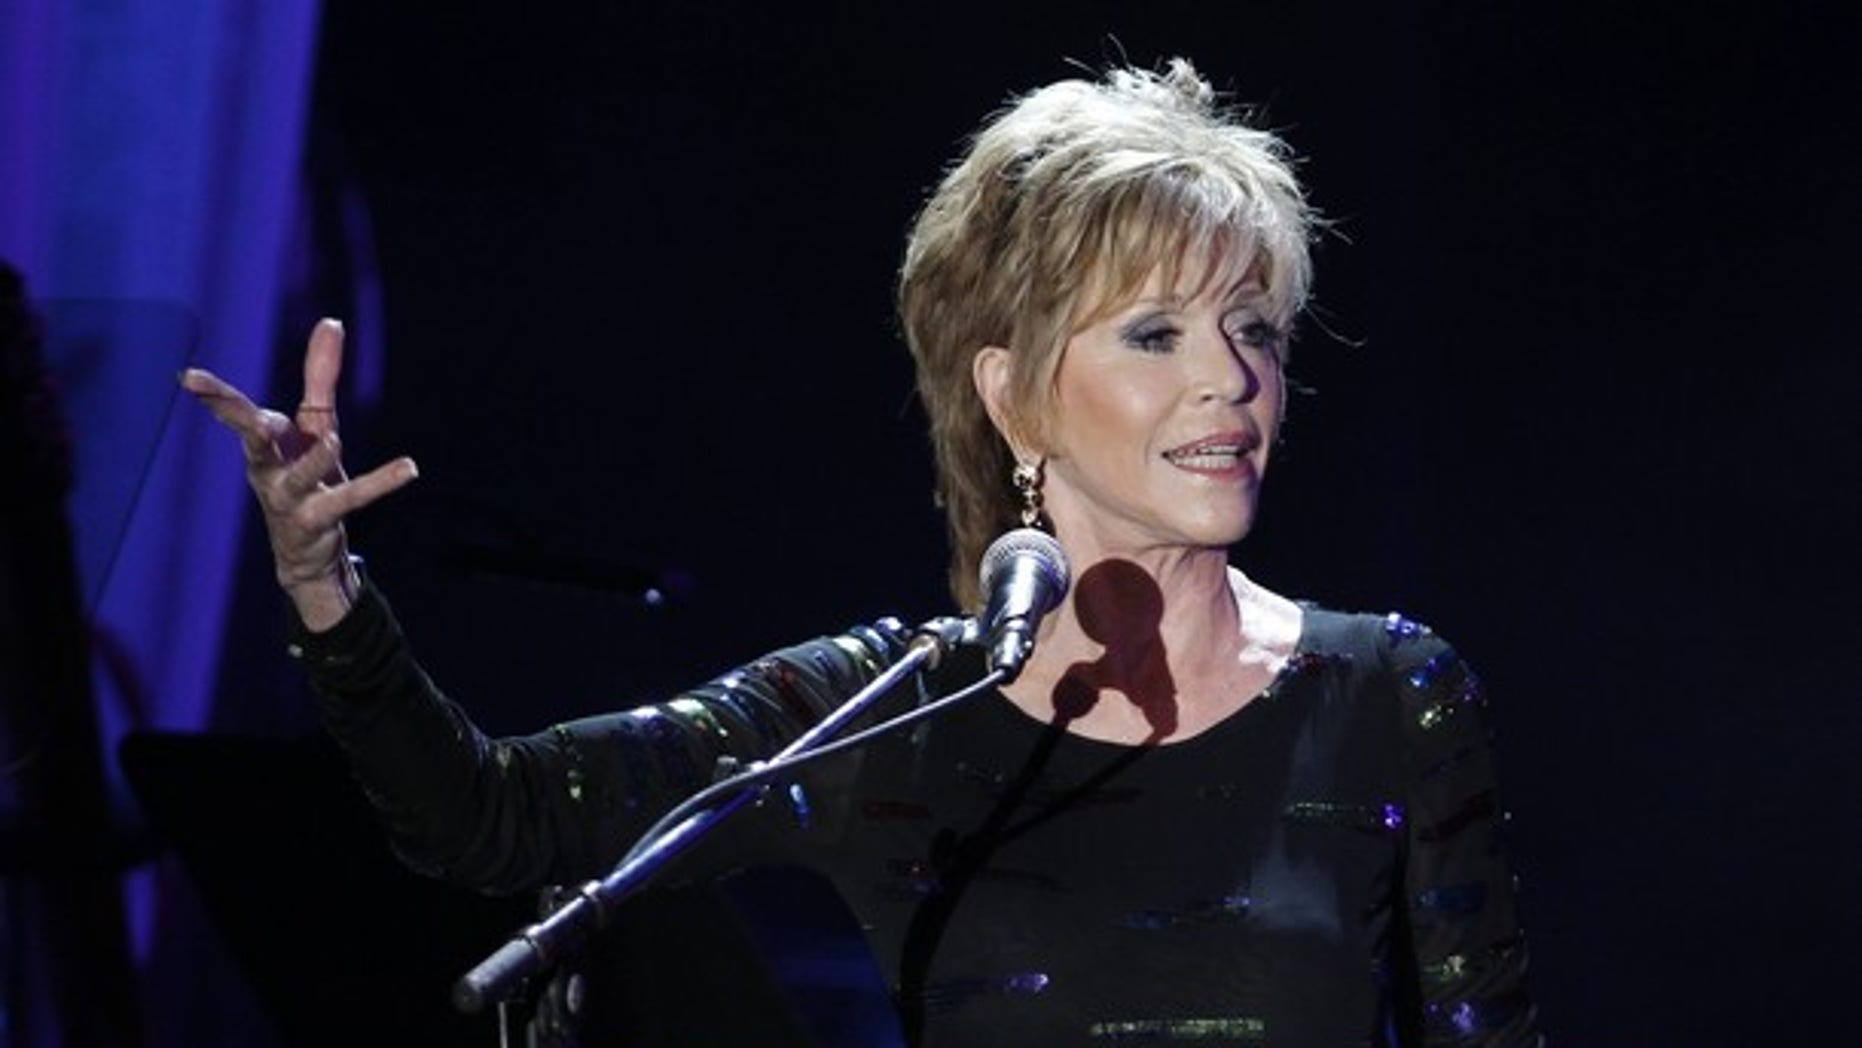 Feb. 11: Jane Fonda presents an honorary award to Richard Branson during the 2012 Pre-Grammy Gala & Salute to Industry Icons at the Beverly Hilton Hotel in Beverly Hills